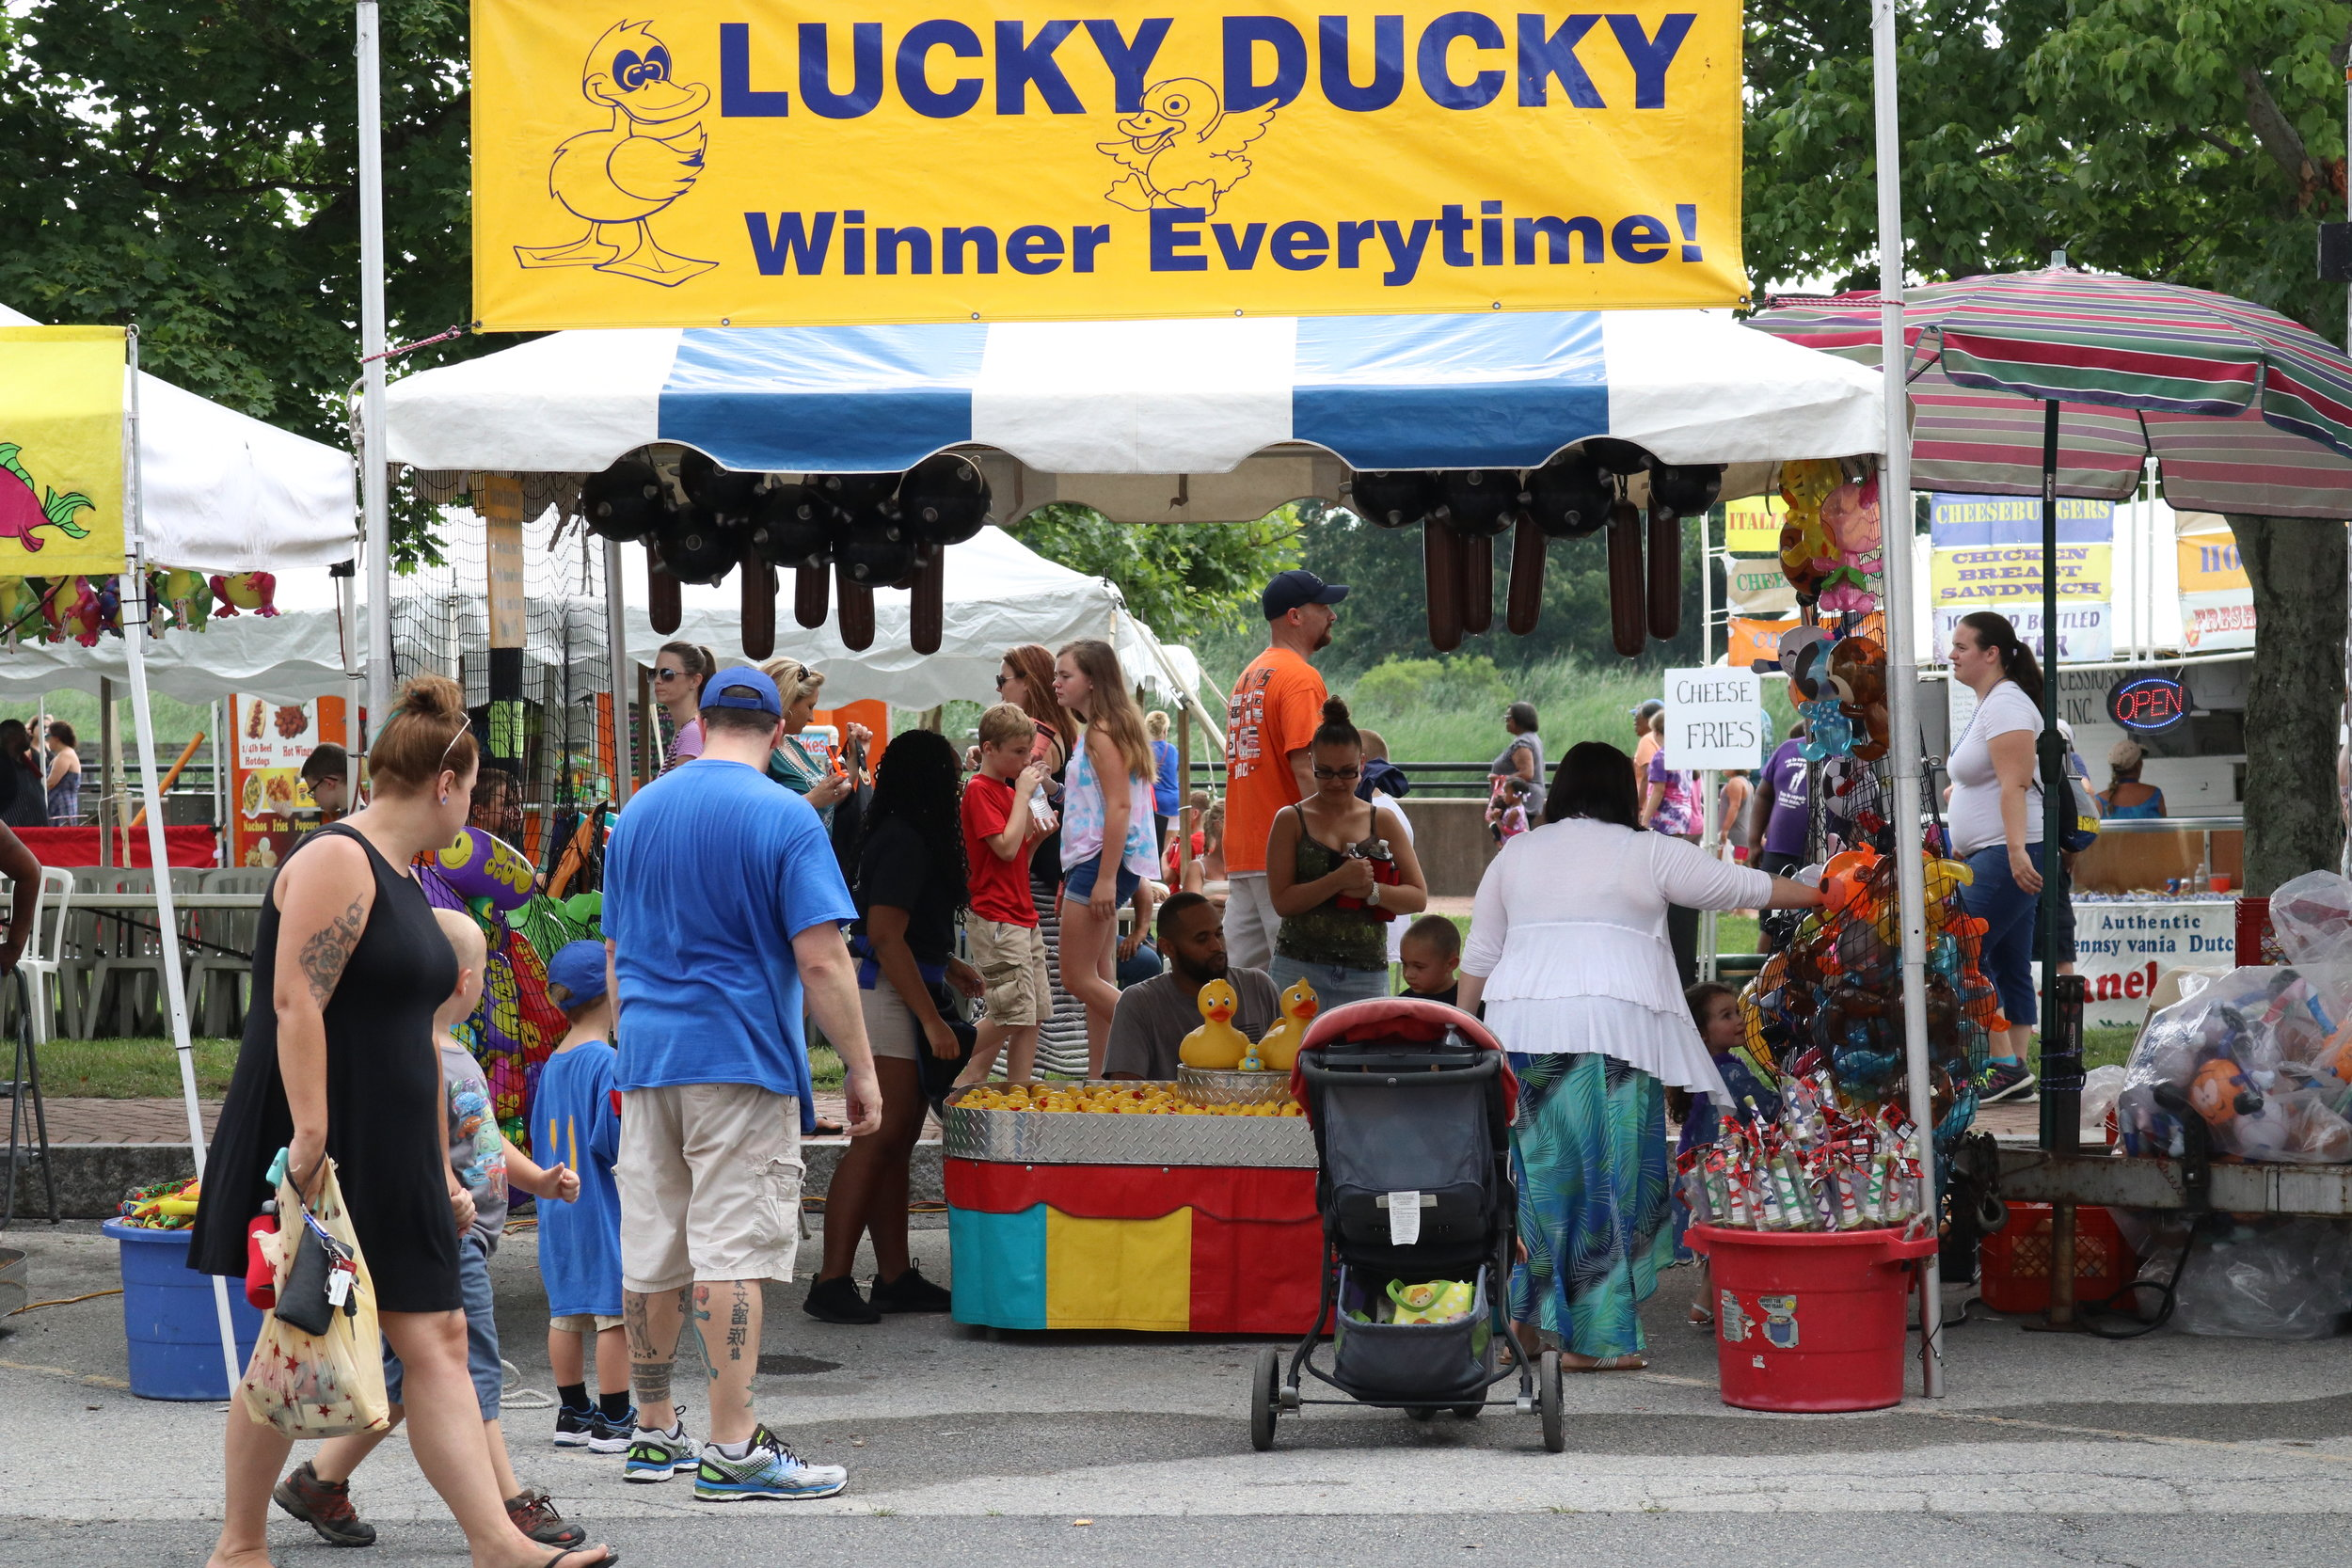 Lucky Ducky - Catch a duck and win prize! Under each duck are 3 letters, S,M,L. These letter determine the prize you win. How lucky are you?